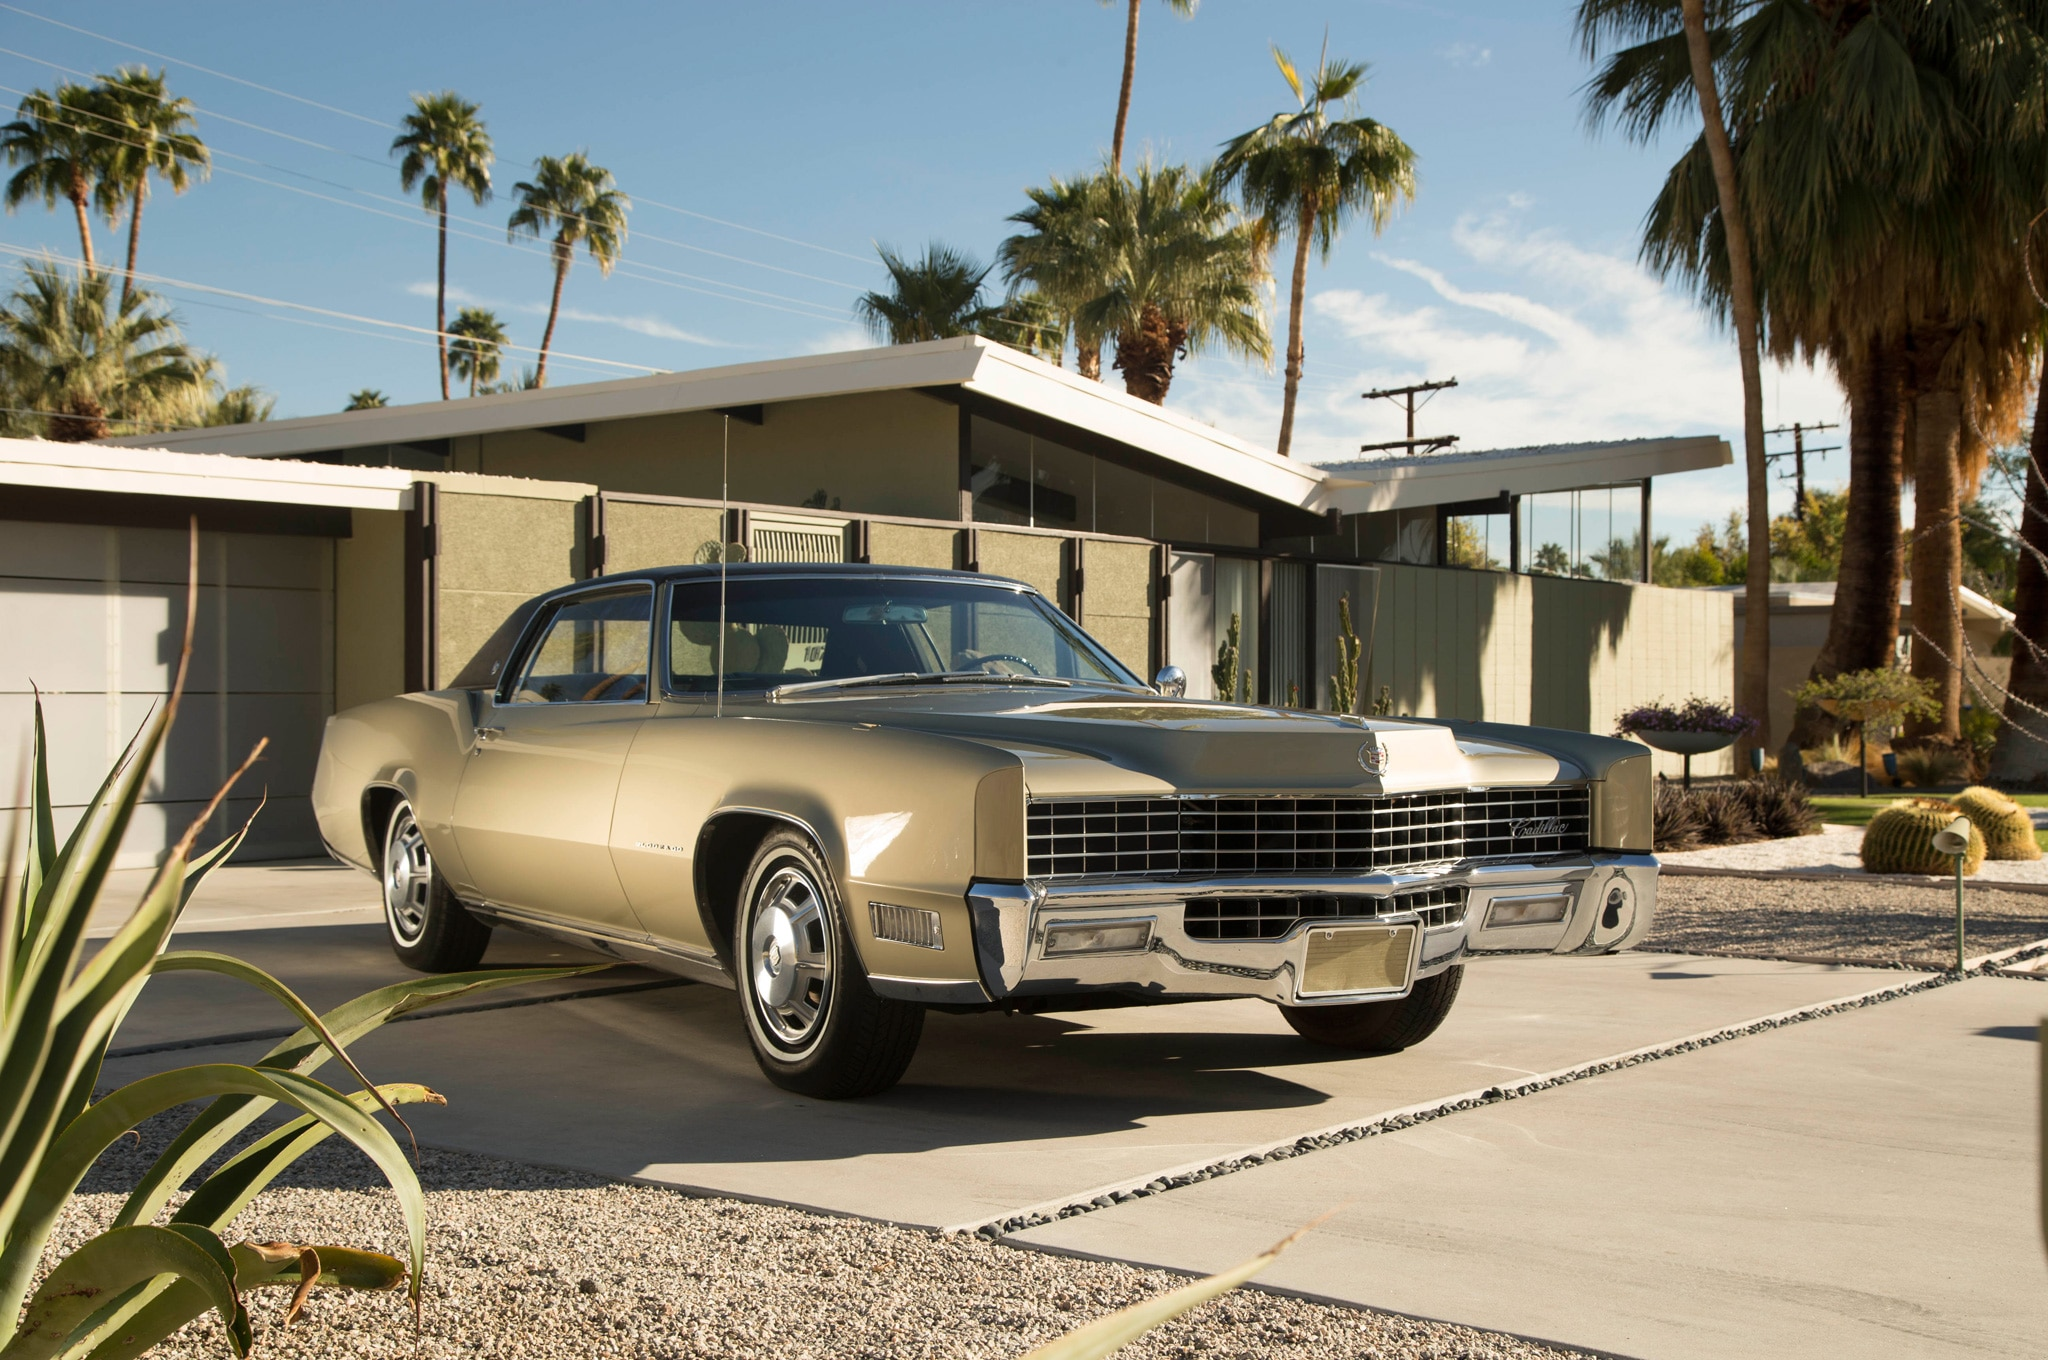 Craigslist Sf Bay Area >> 1967 Cadillac Craigslist | Autos Post